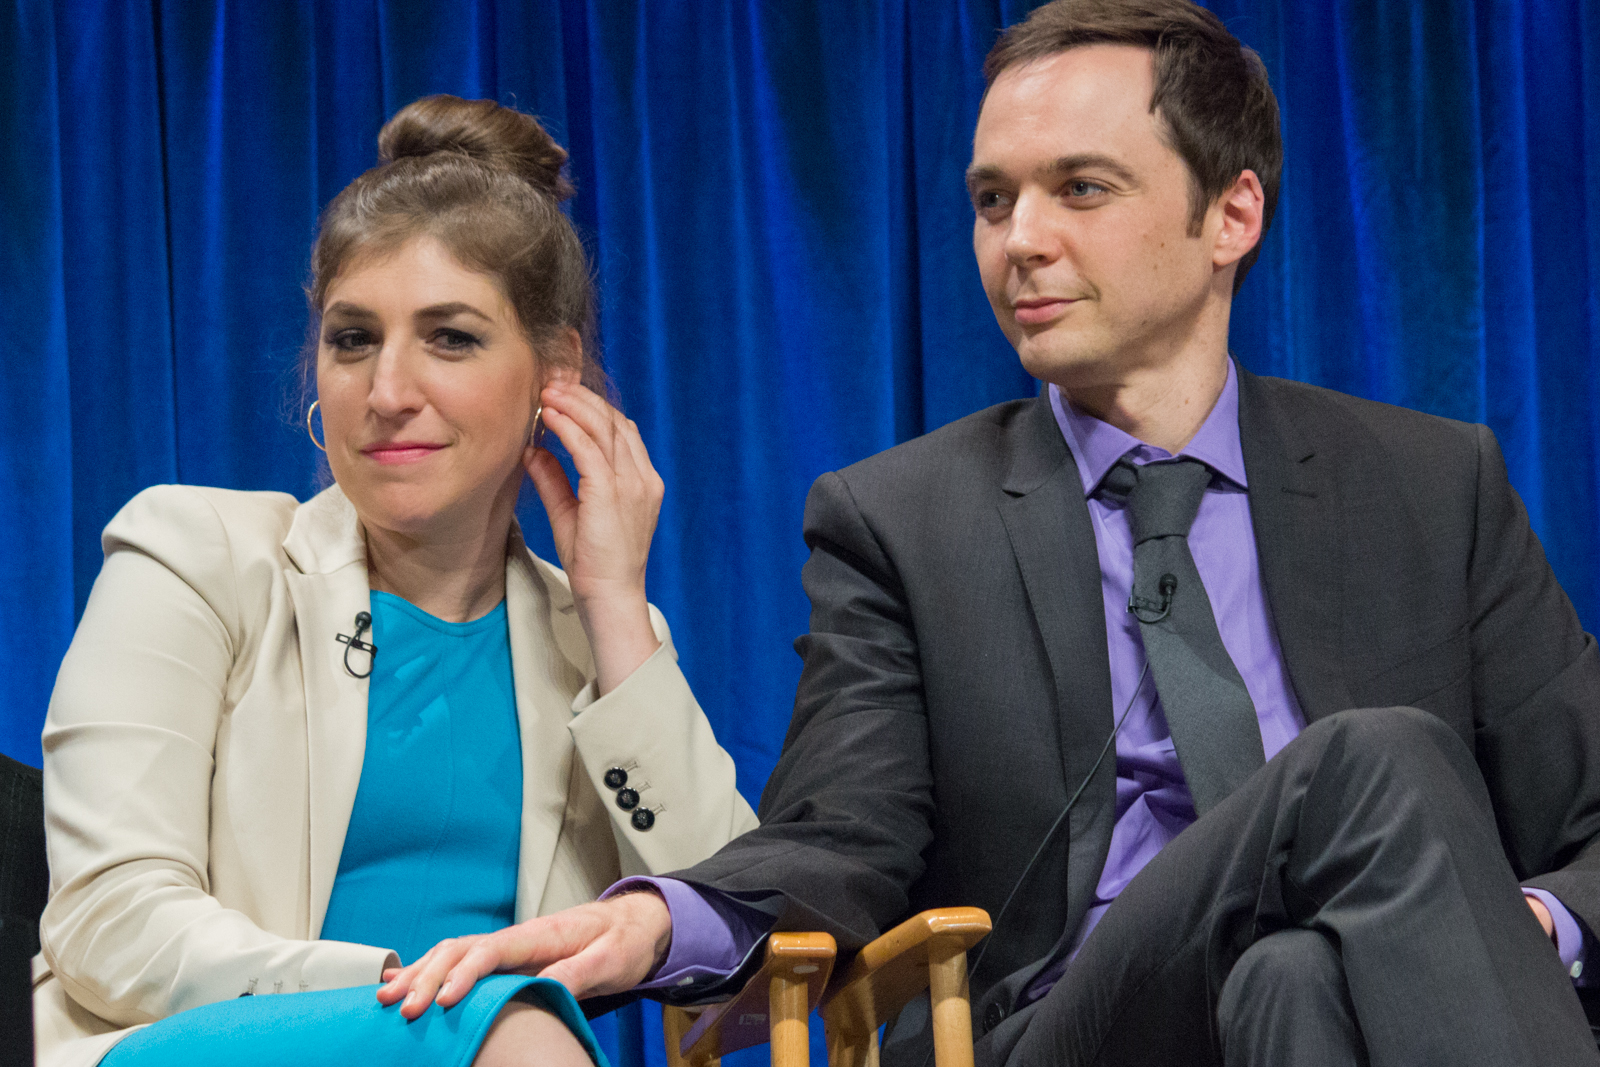 'Big Bang Theory' stars Jim Parsons, Mayim Bialik to Work Together Again in New Comedy